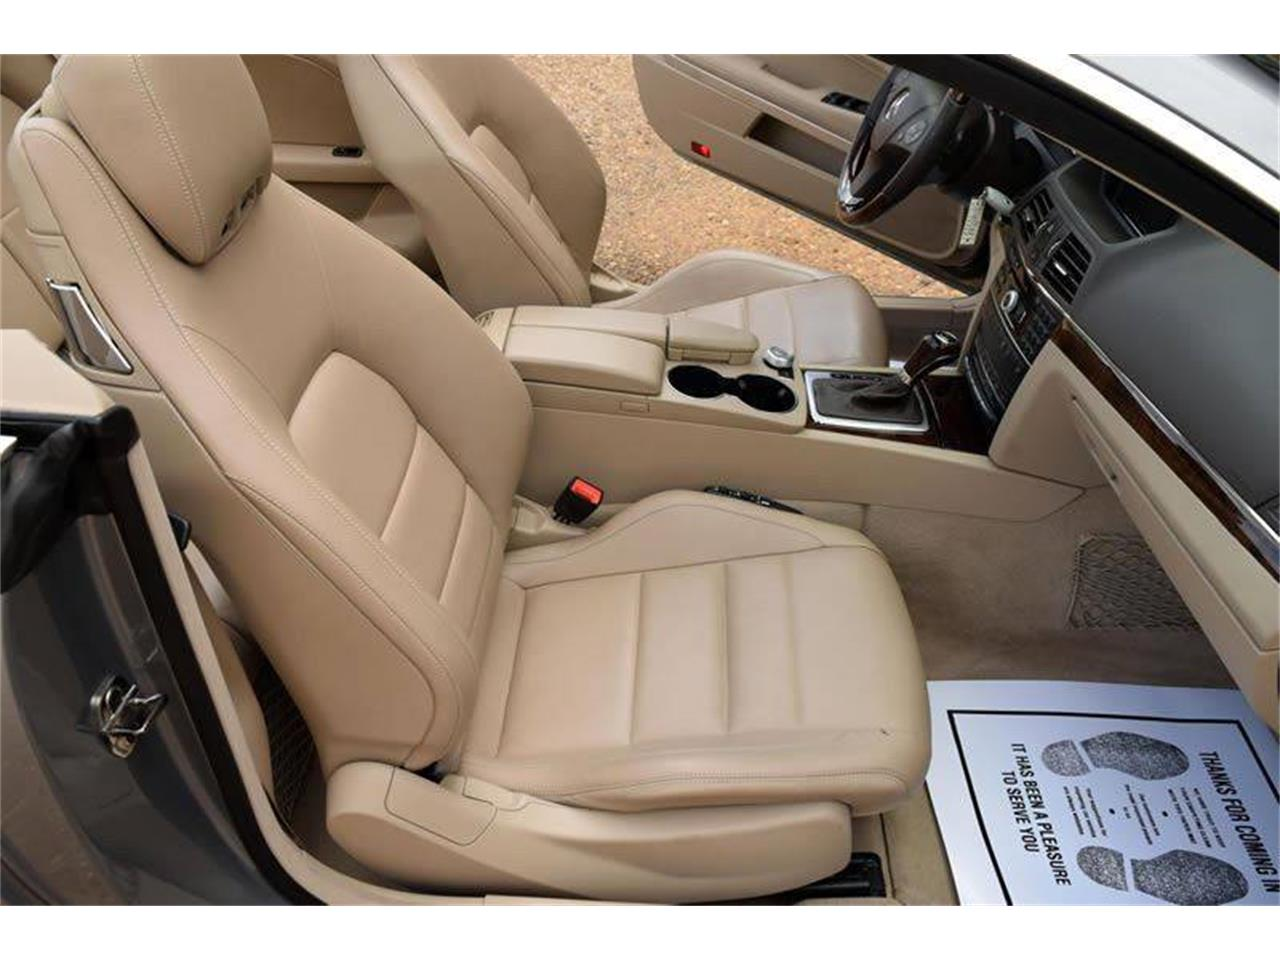 Large Picture of '11 Mercedes-Benz E-Class - $23,900.00 Offered by ABC Dealer TEST - LEHJ